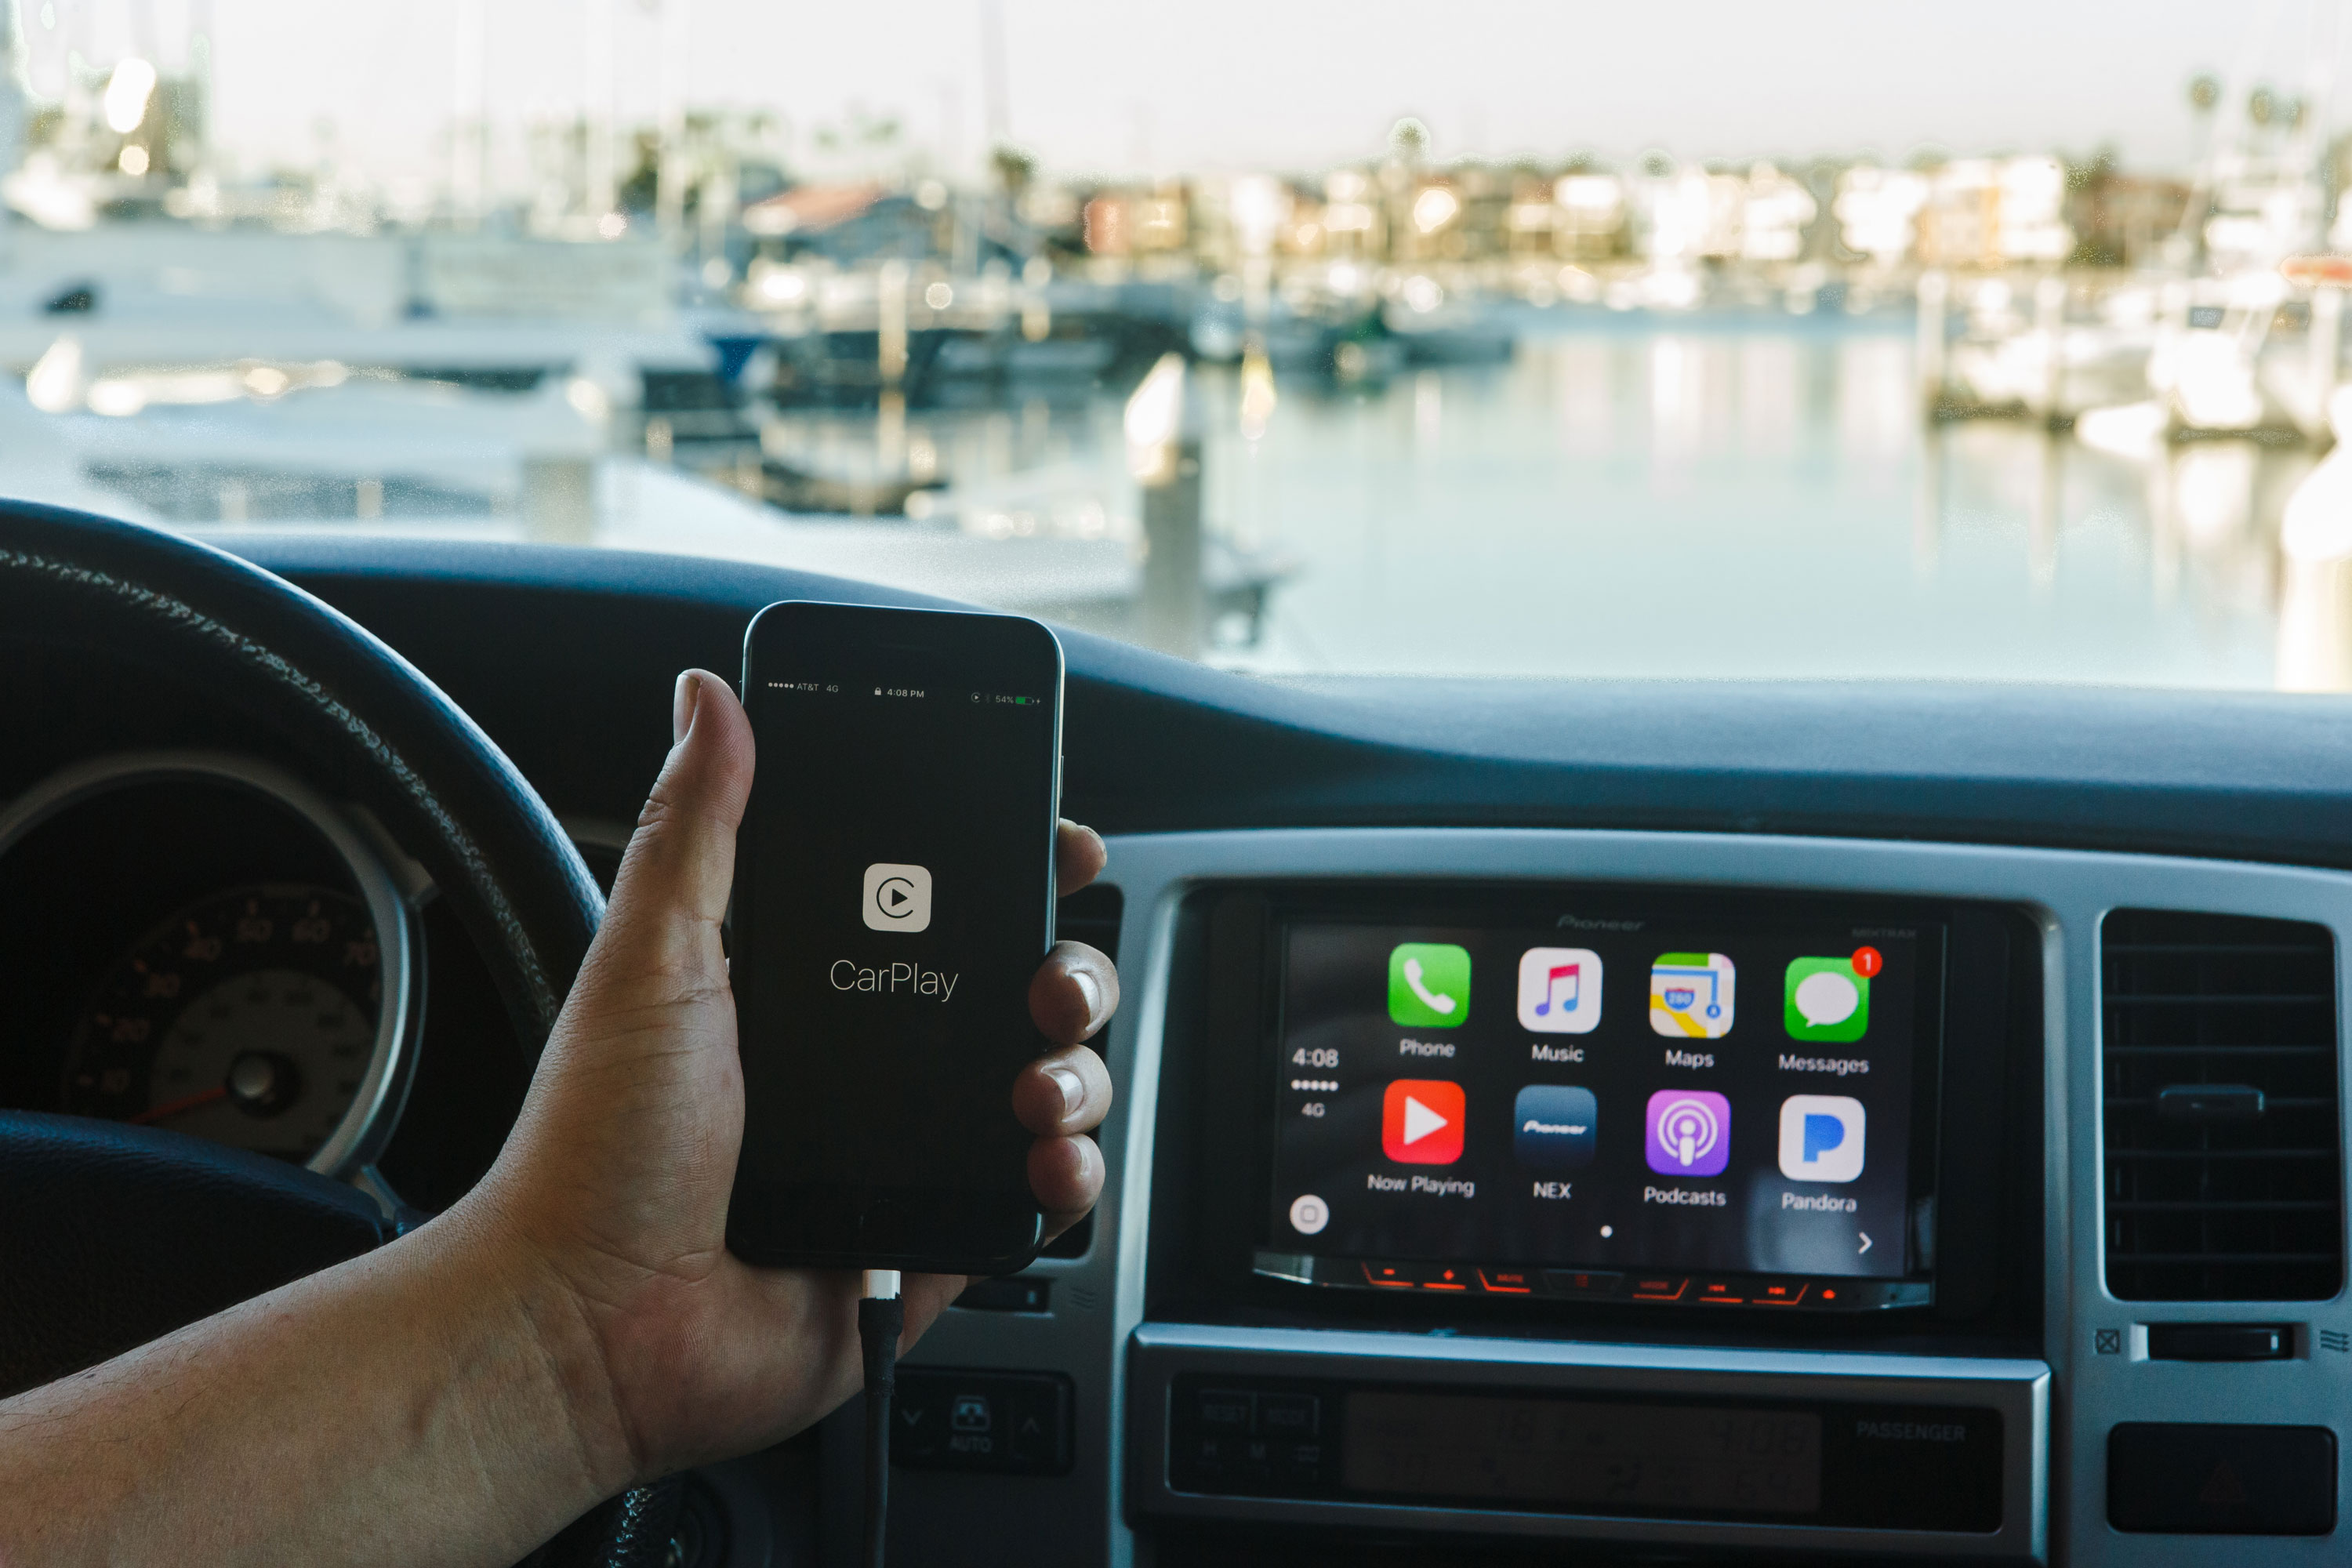 10 Things to Know About Apple CarPlayï ¿ Connected Car Life